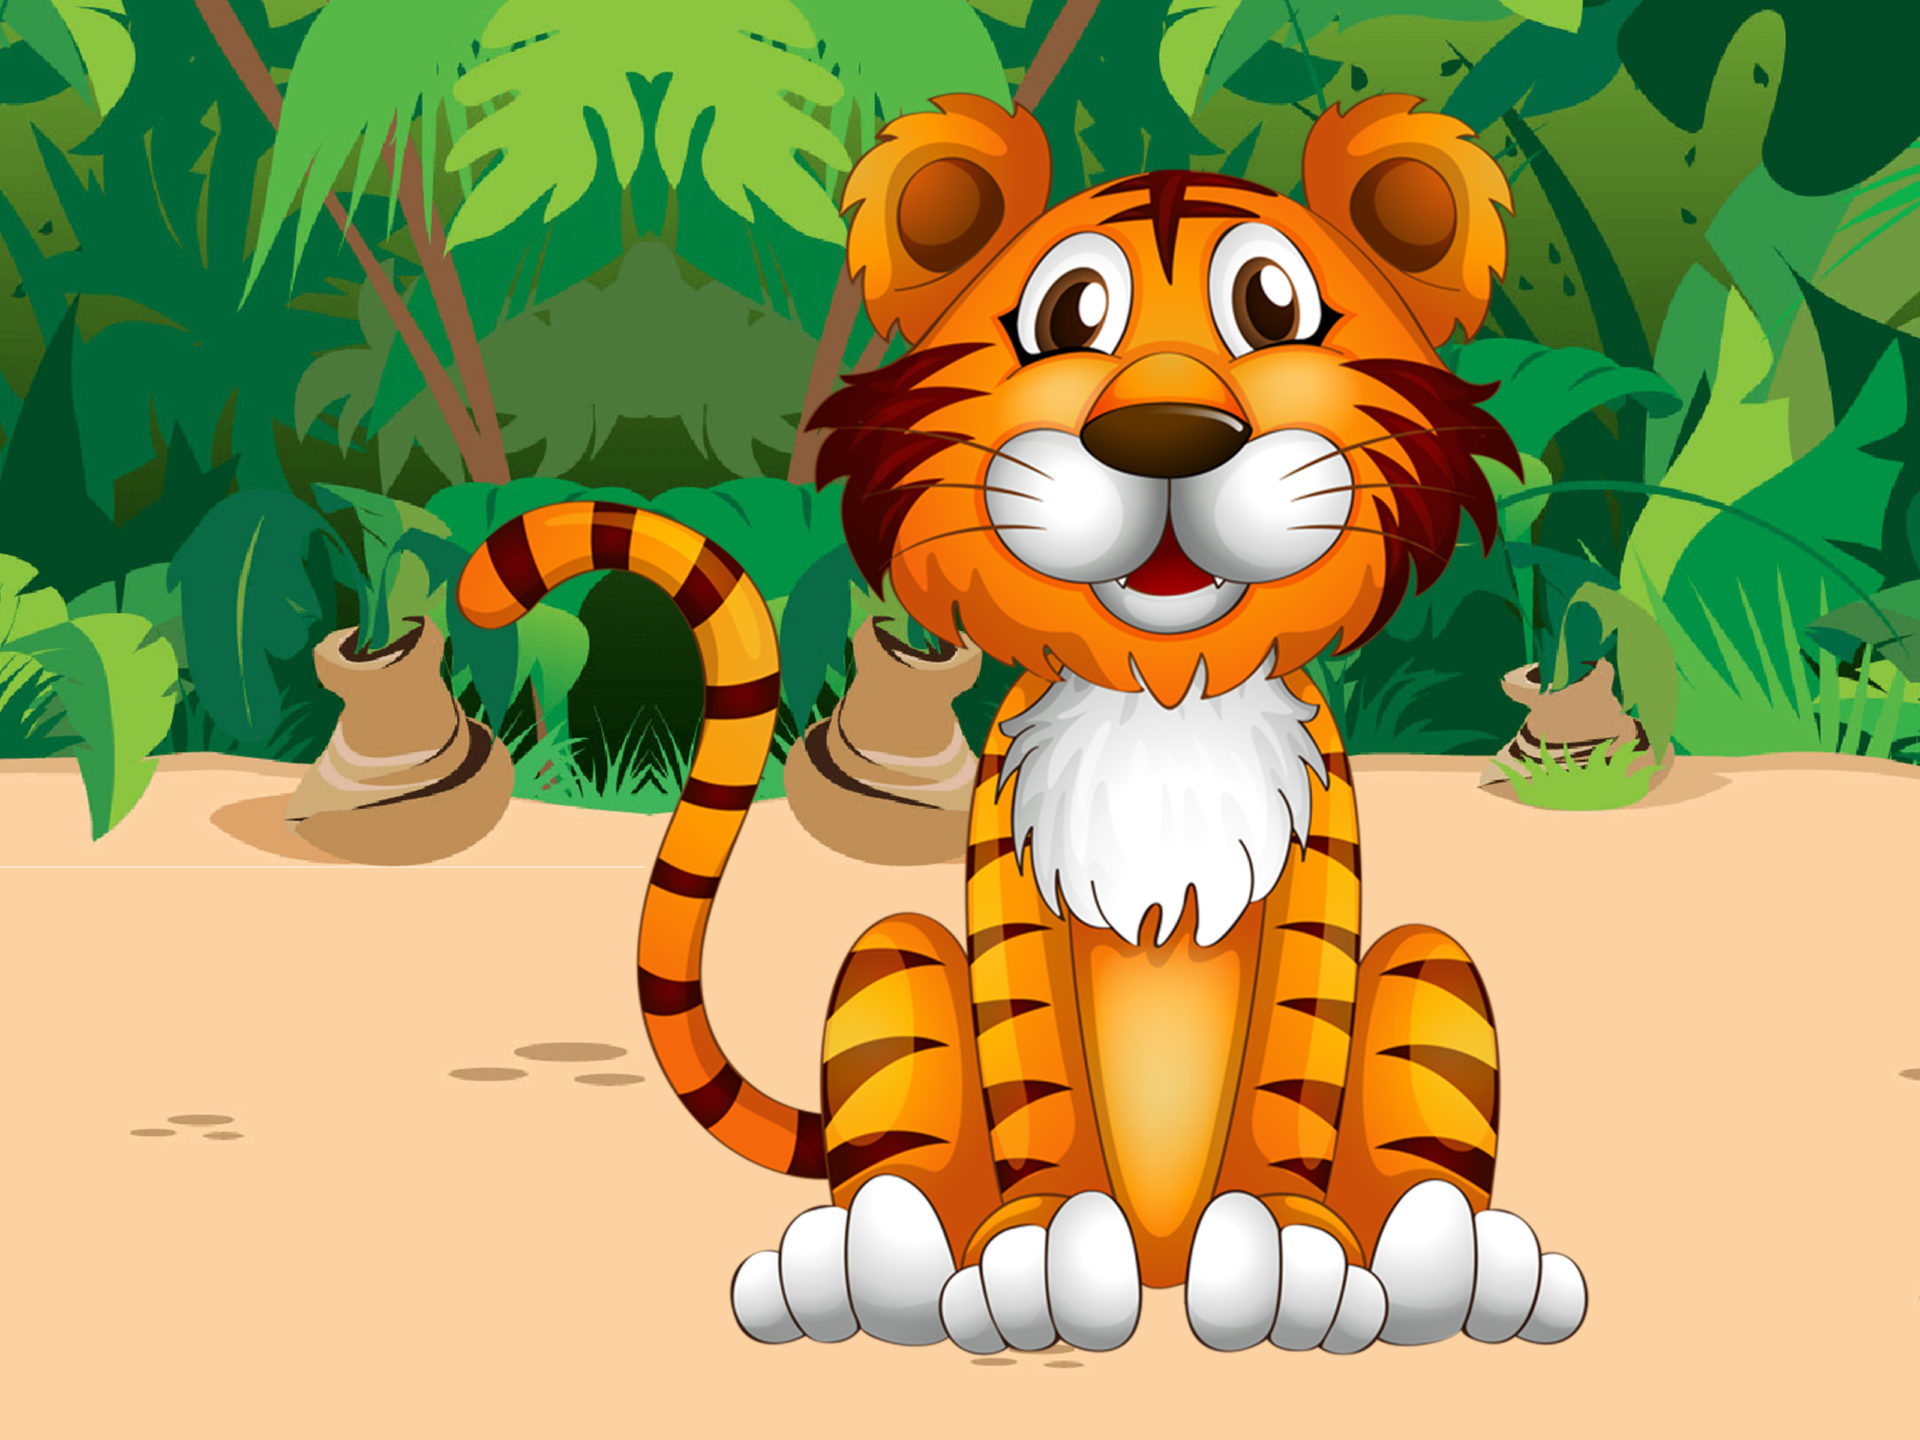 Cute Jungle Wallpaper Cute Tiger Jungle Plant Cartoon Picture Pretty Desktop Hd